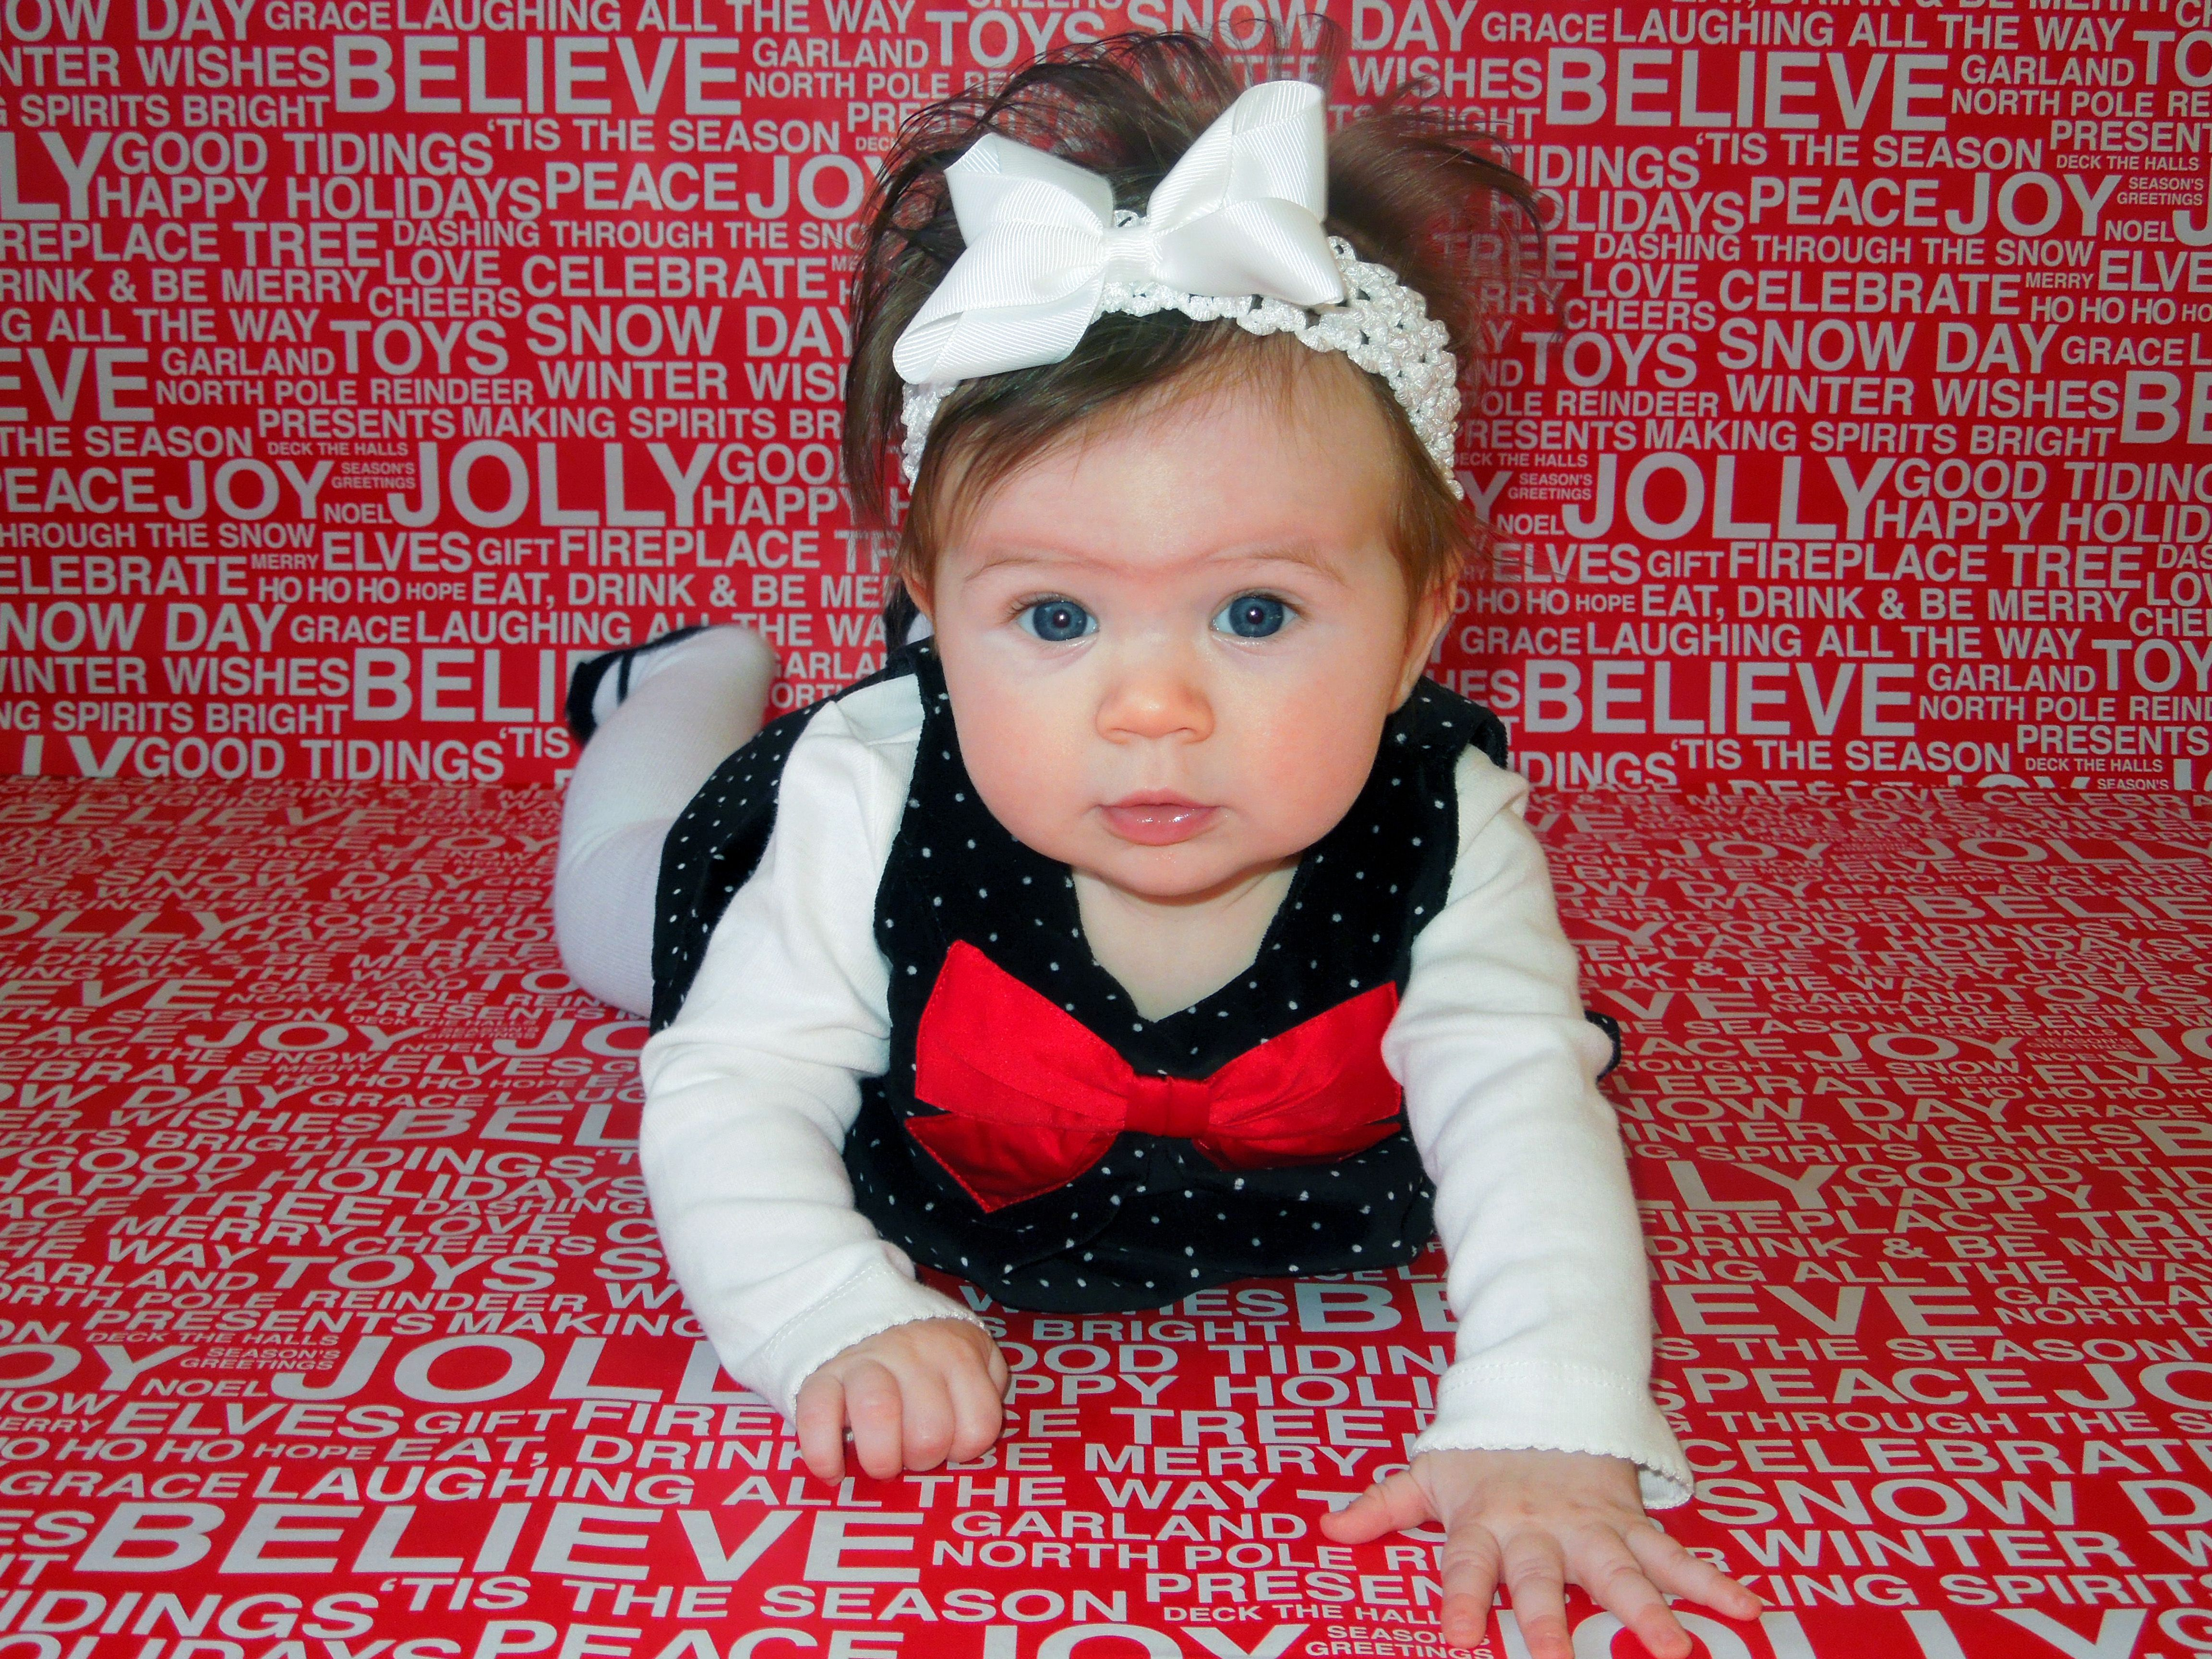 Christmas Picture Backdrop Ideas Christmas Photos Use Wrapping Paper As The Backdrop Christmas